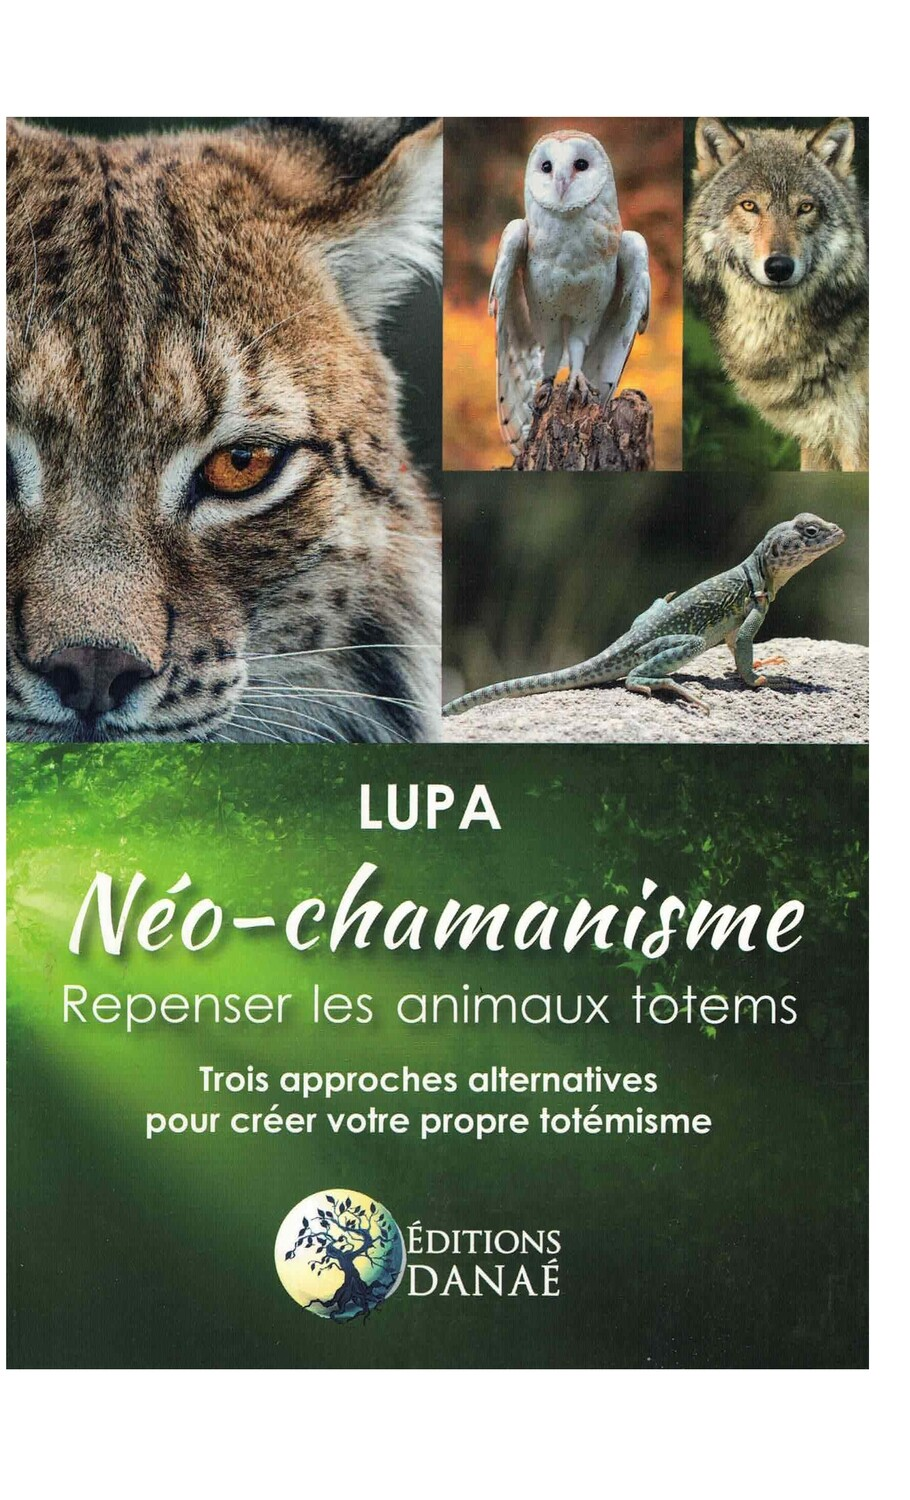 Neo-chamanisme, repenser les animaux totems